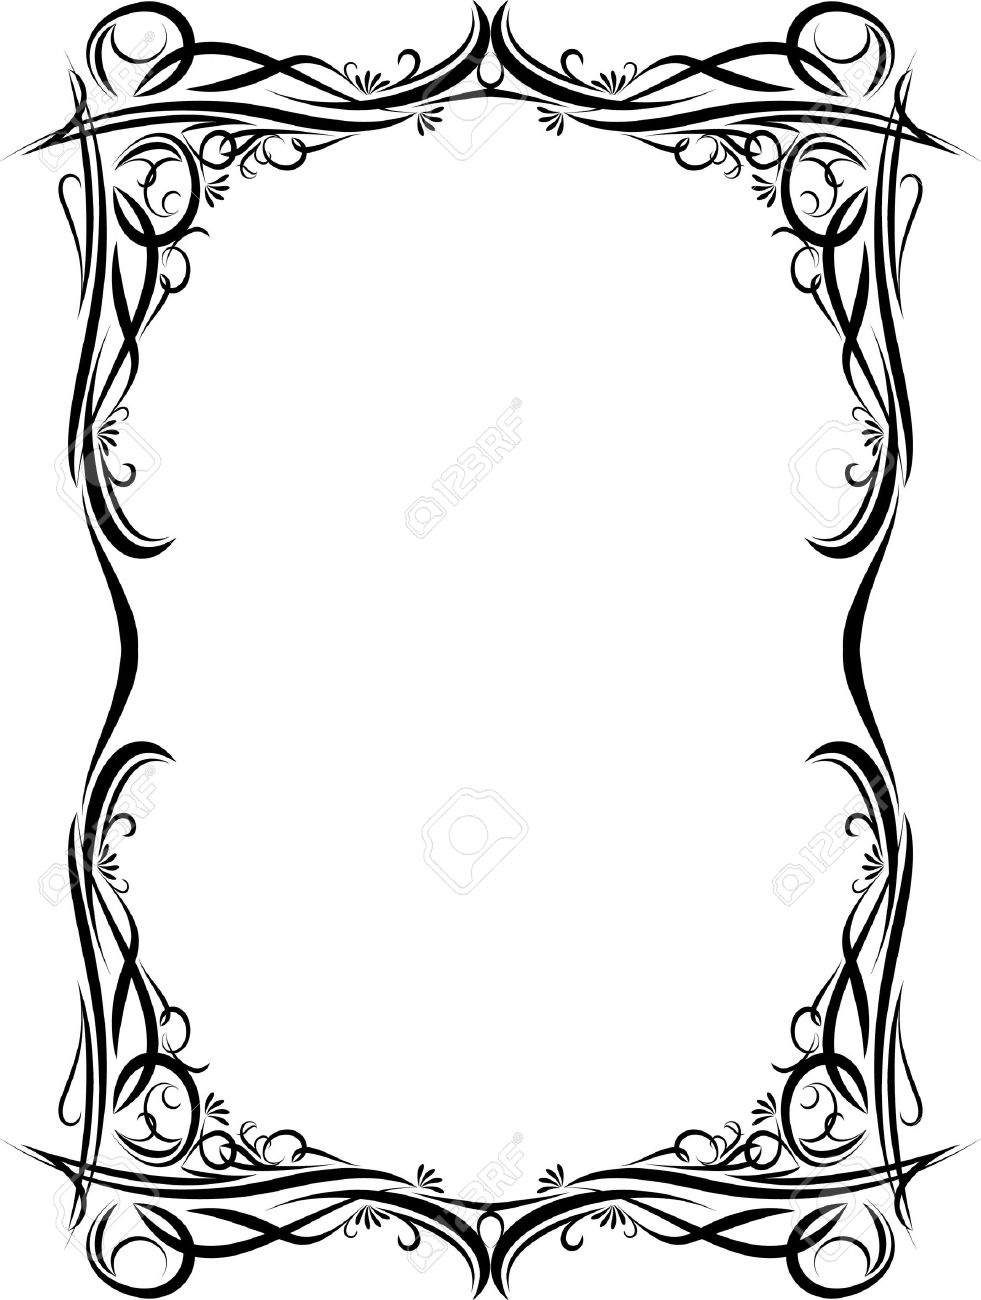 Elegant decorative frame. Stock Vector - 10708775